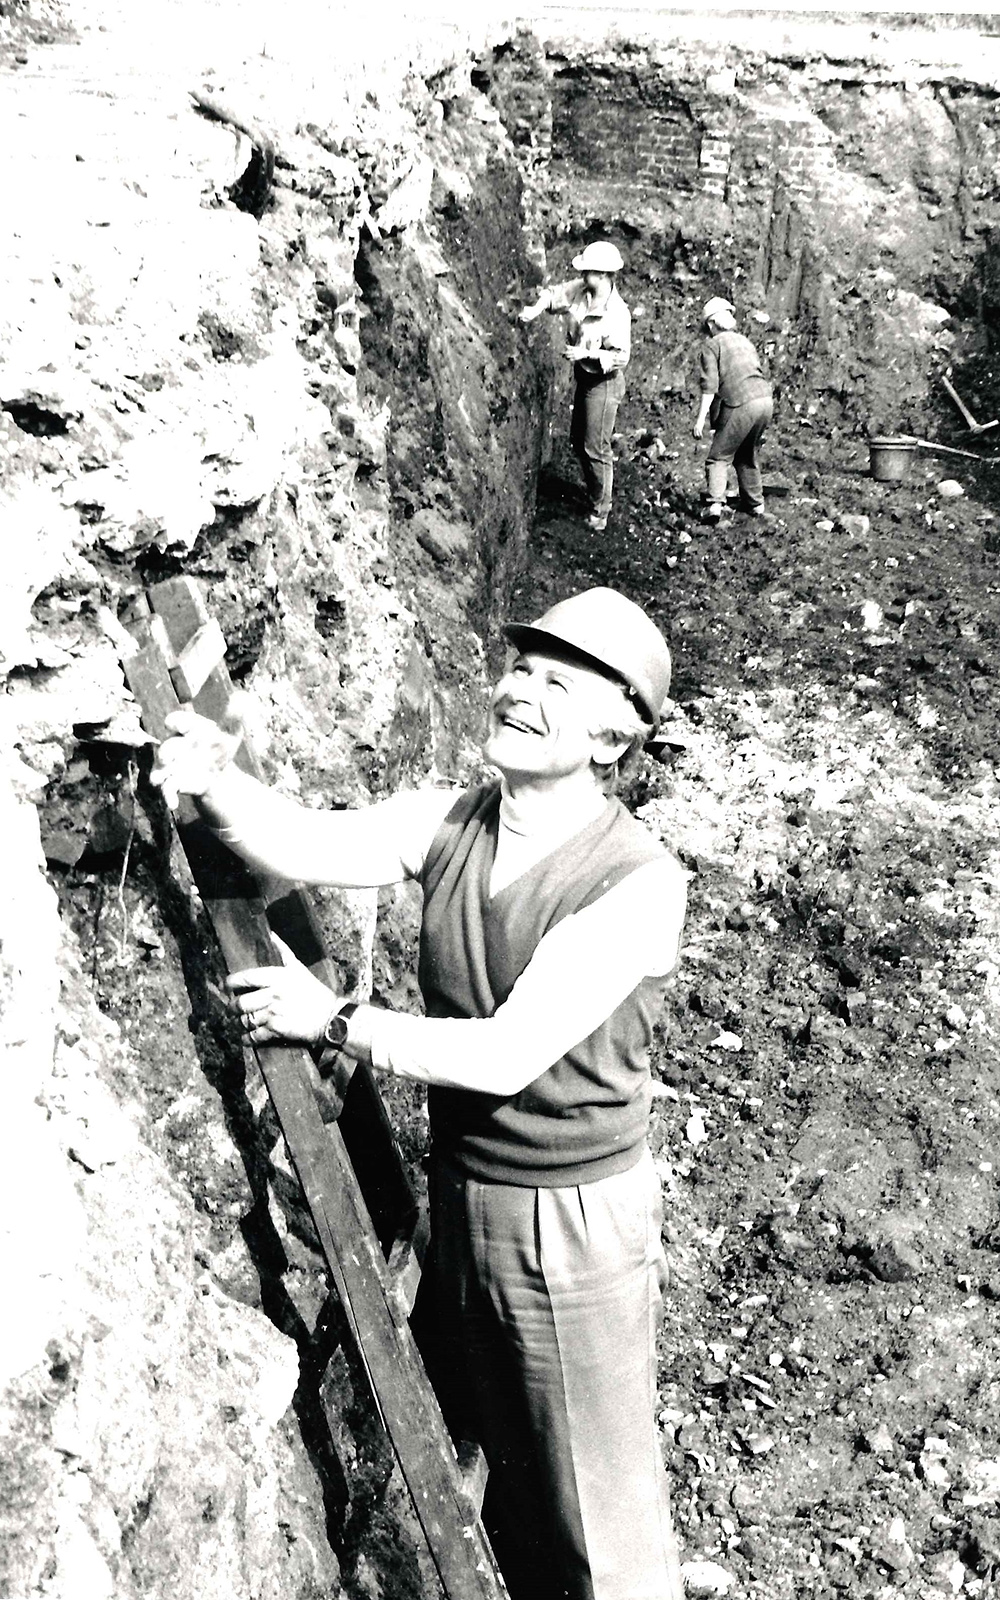 A man stands on a ladder in a ditch of mud and dirt, wearing a hard hat.